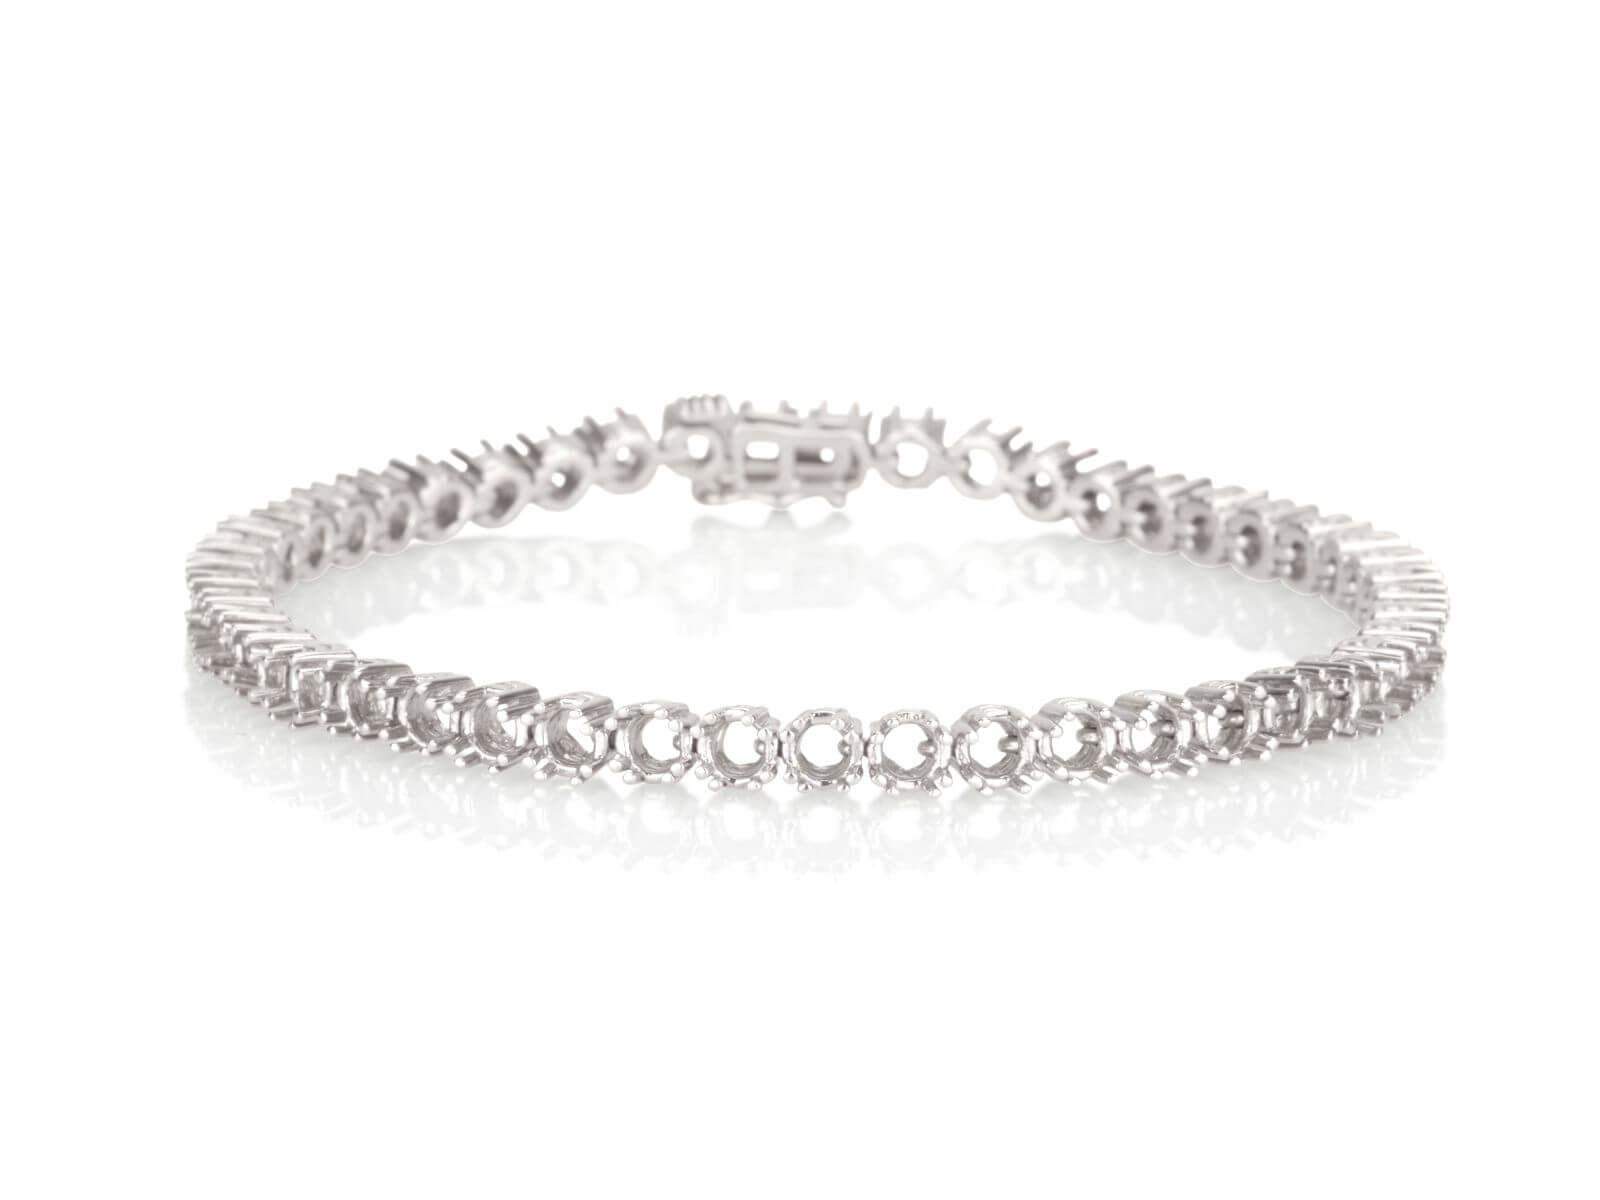 Tennis bracelet 8 prongs